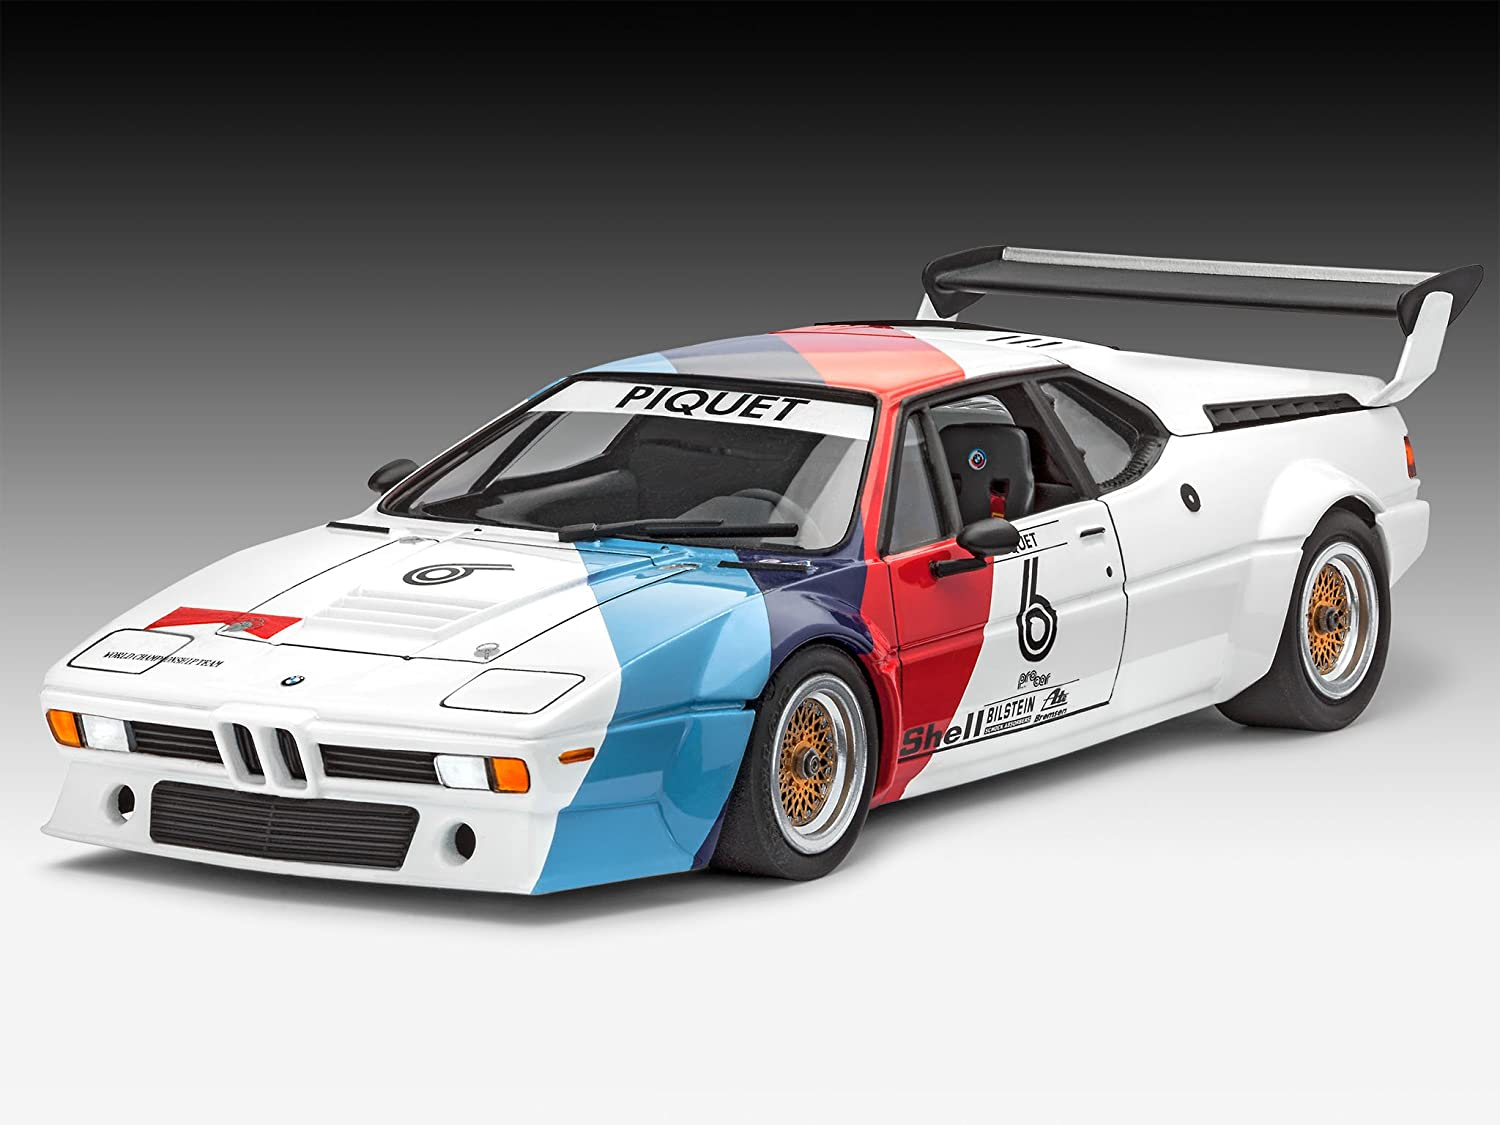 Buy 07247 1/24 78 BMW M1 Pro-Car Online at Low Prices in India ...